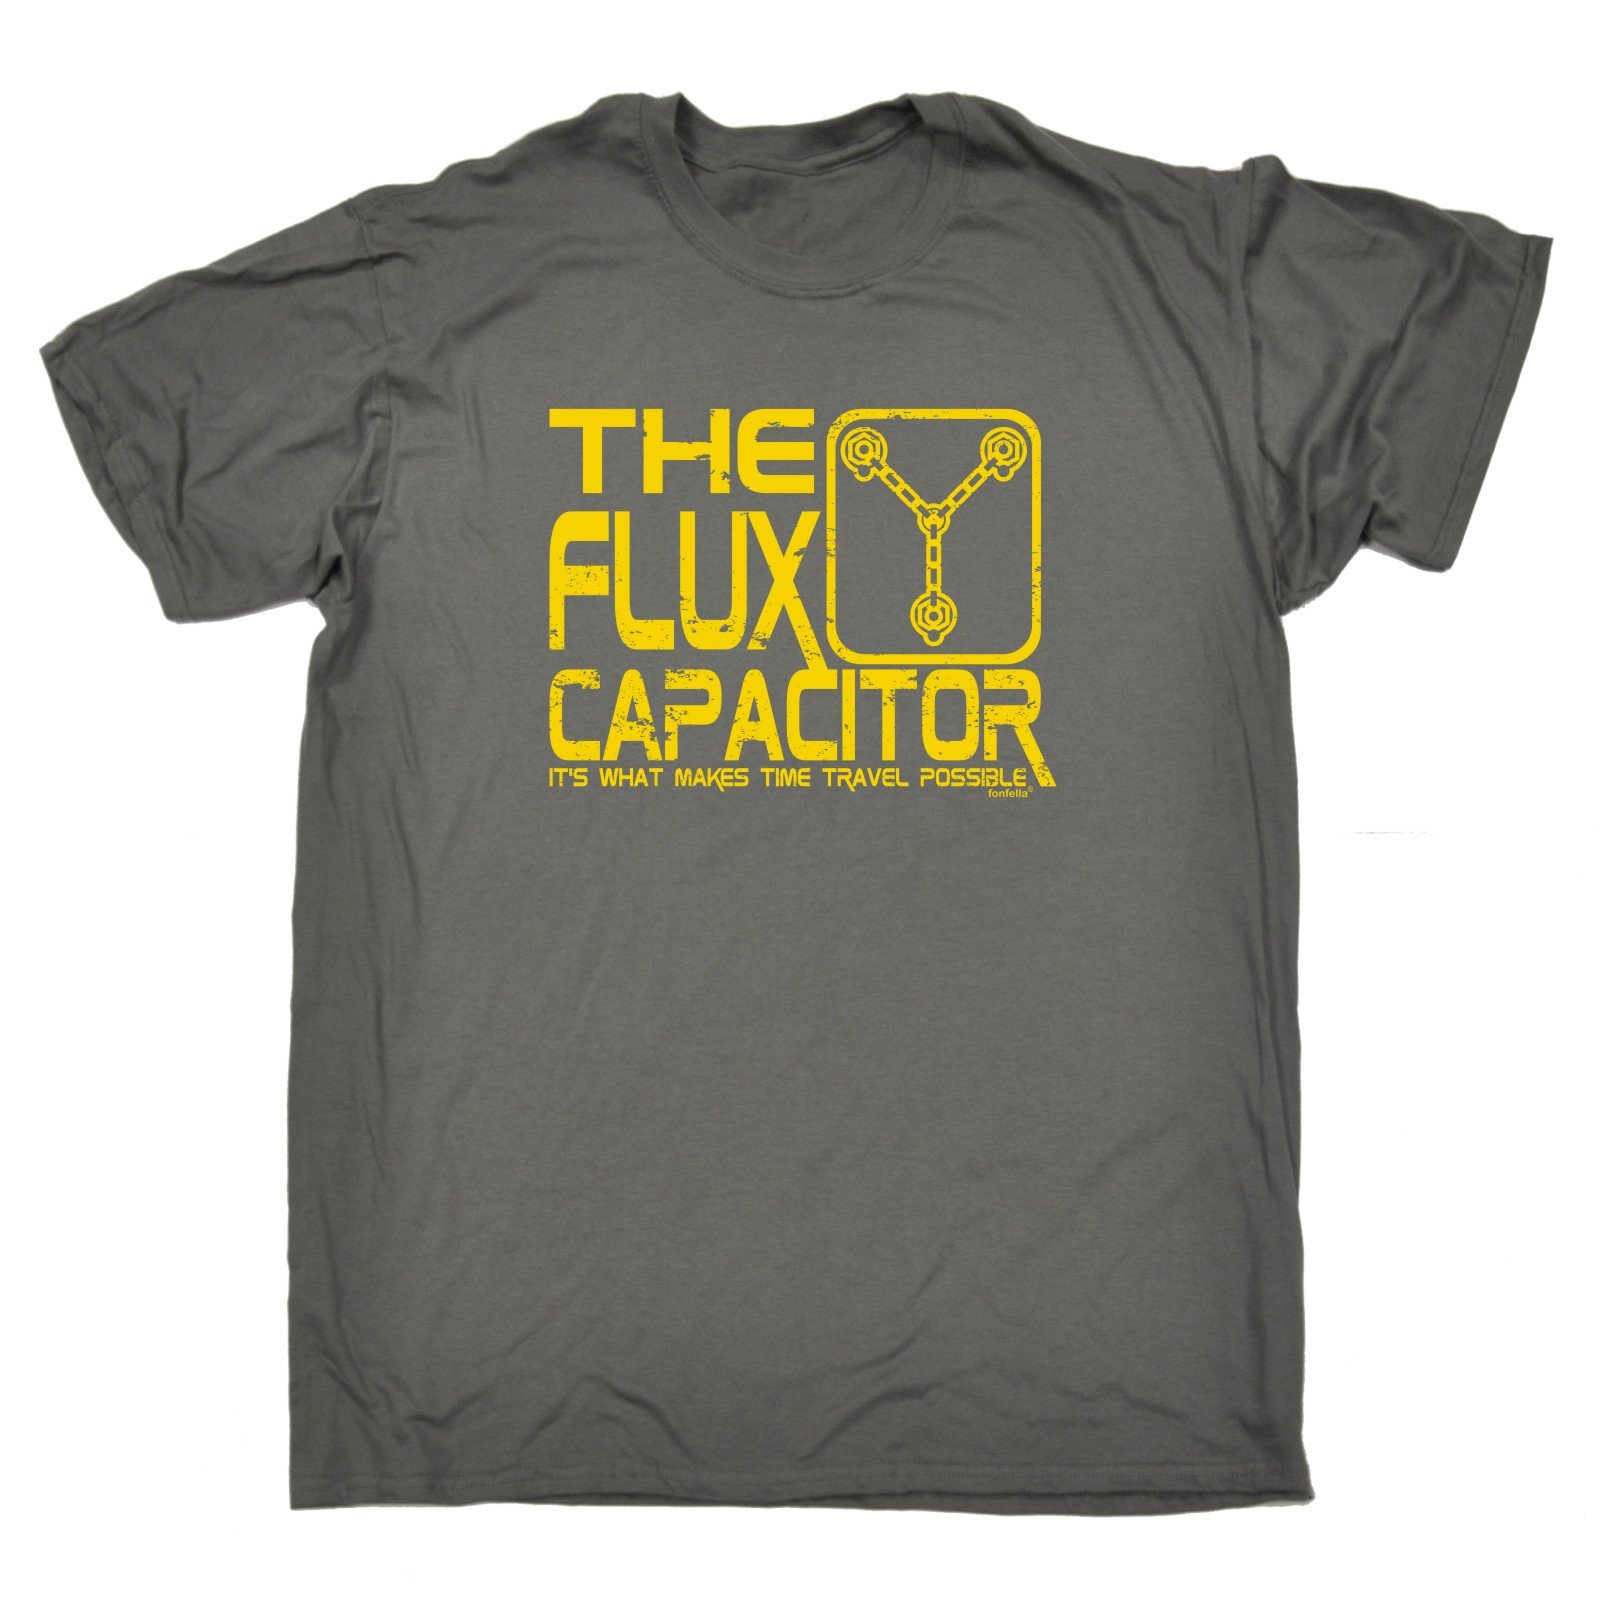 The Flux Capacitor Time Travel Possible T-SHIRT Fashion Funny Gift Birthday